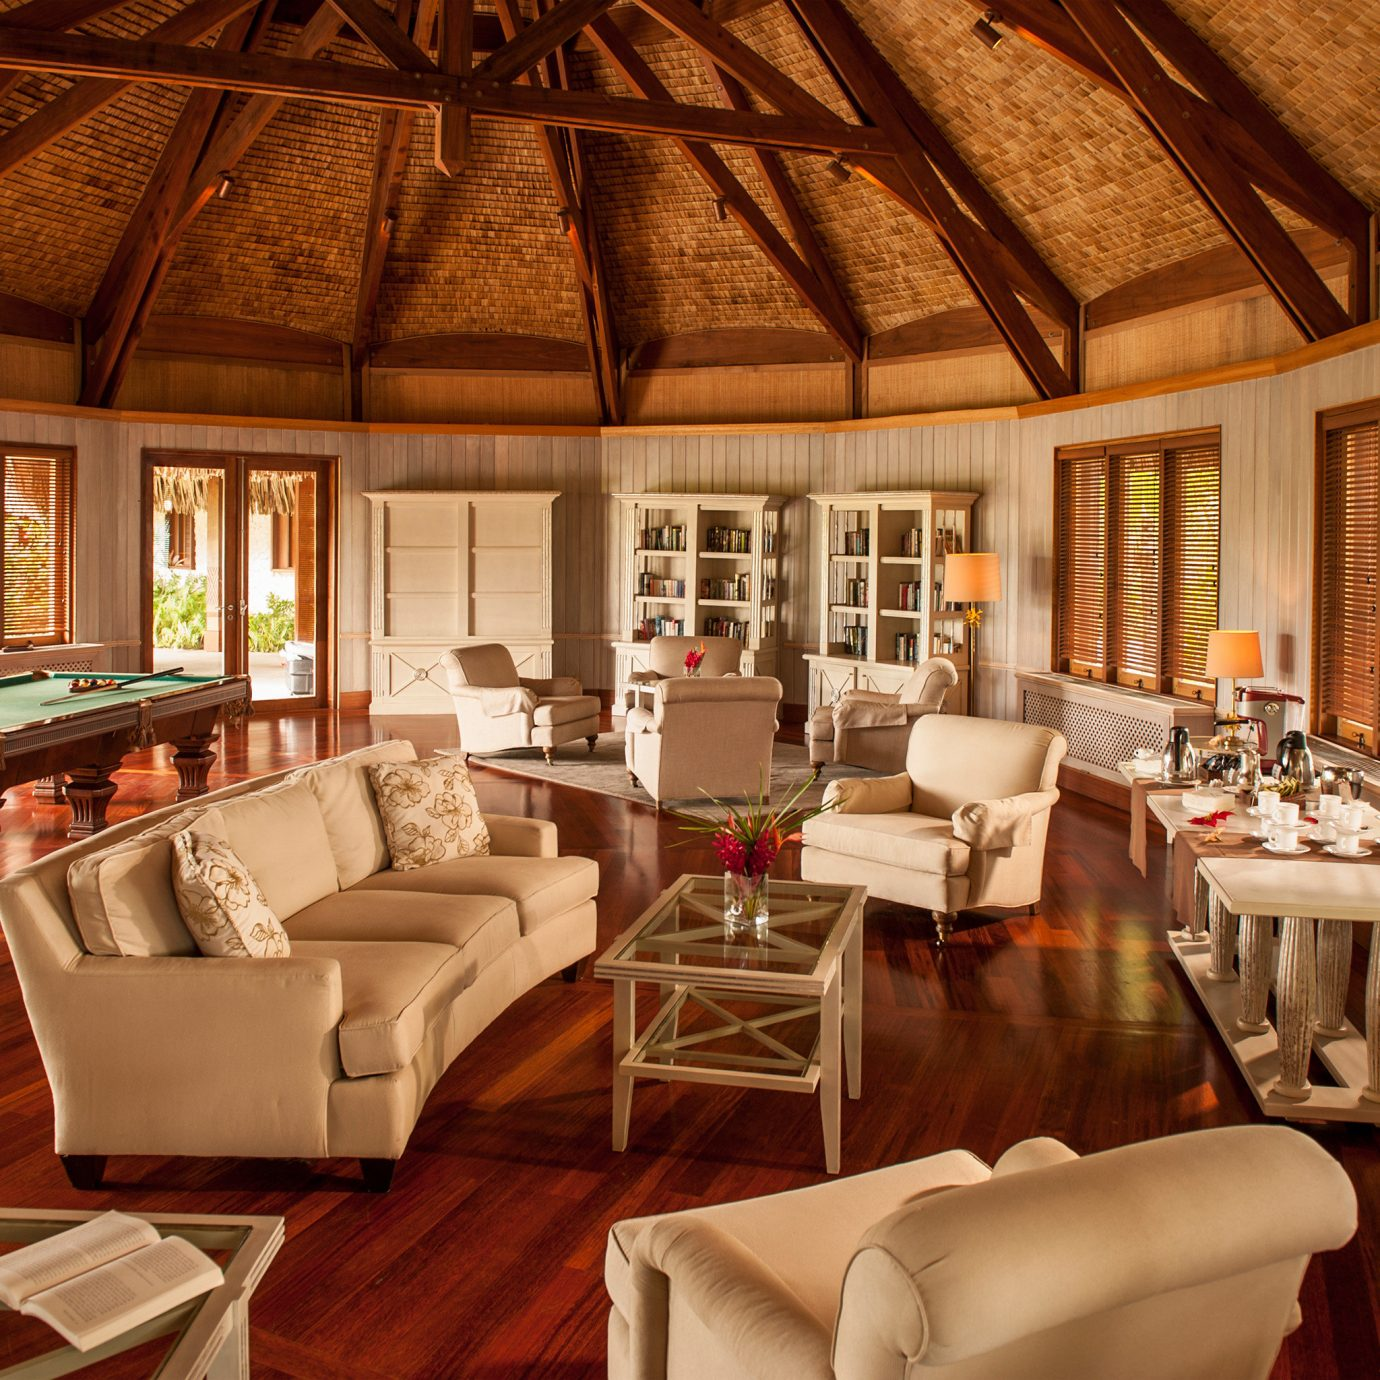 Bedroom Suite chair property Resort living room home restaurant Villa mansion cottage farmhouse Dining leather